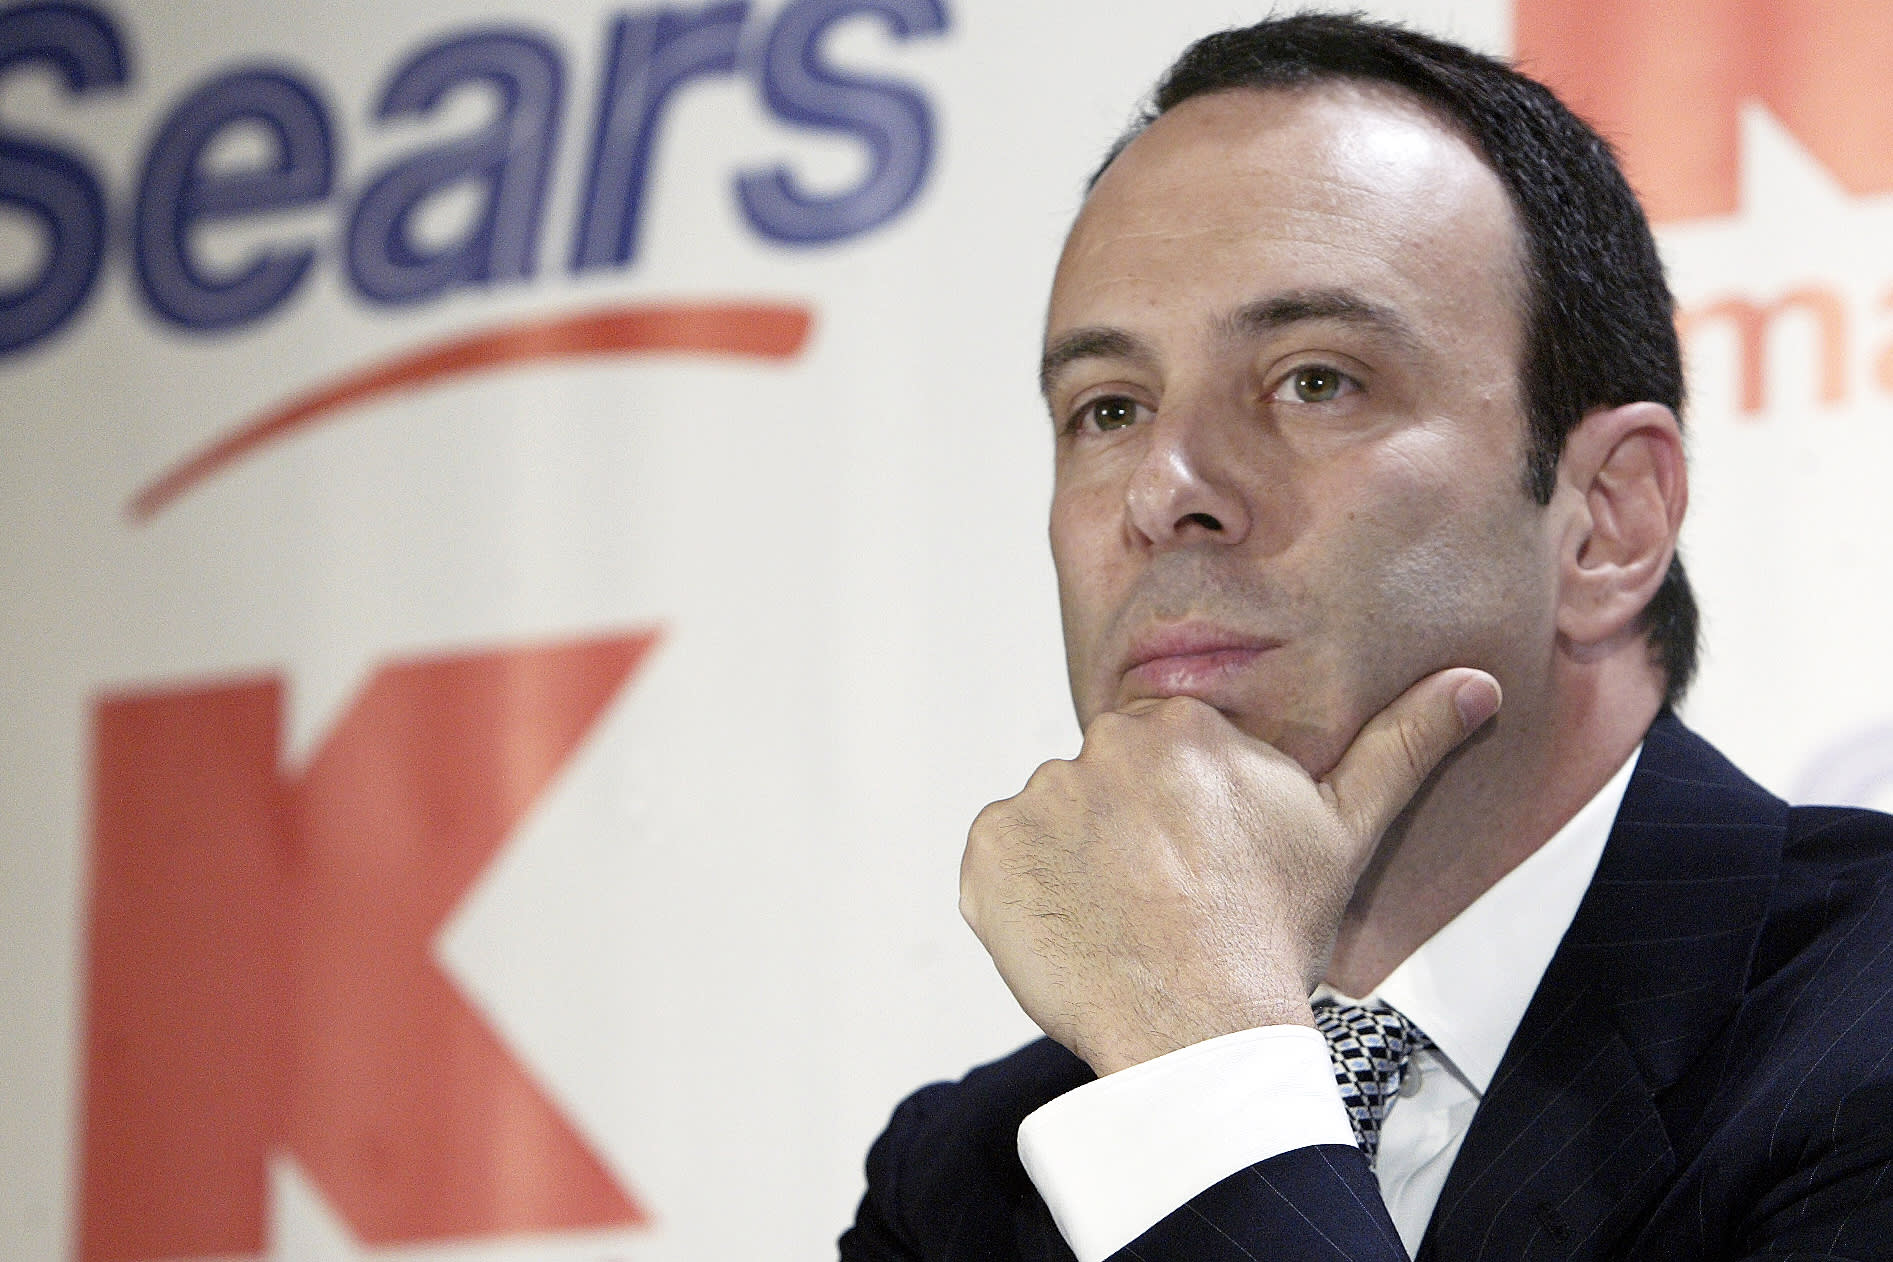 c86c0912dc5 Sears believes Eddie Lampert s bid to save the company is short. Without a  deal